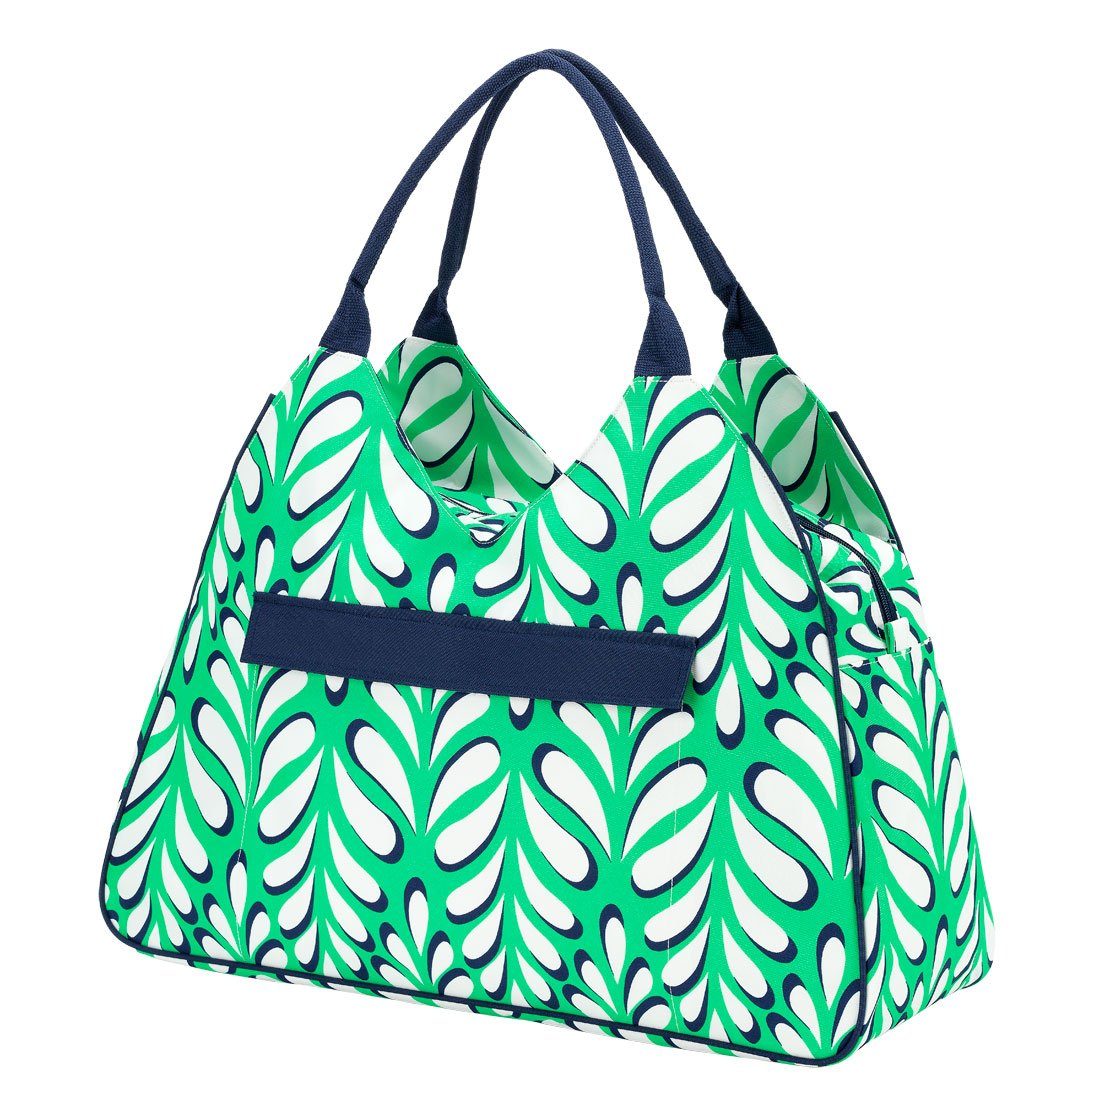 High Fashion Print Water Resistant Large Beach Bag Tote with Zipper Top Island Palm